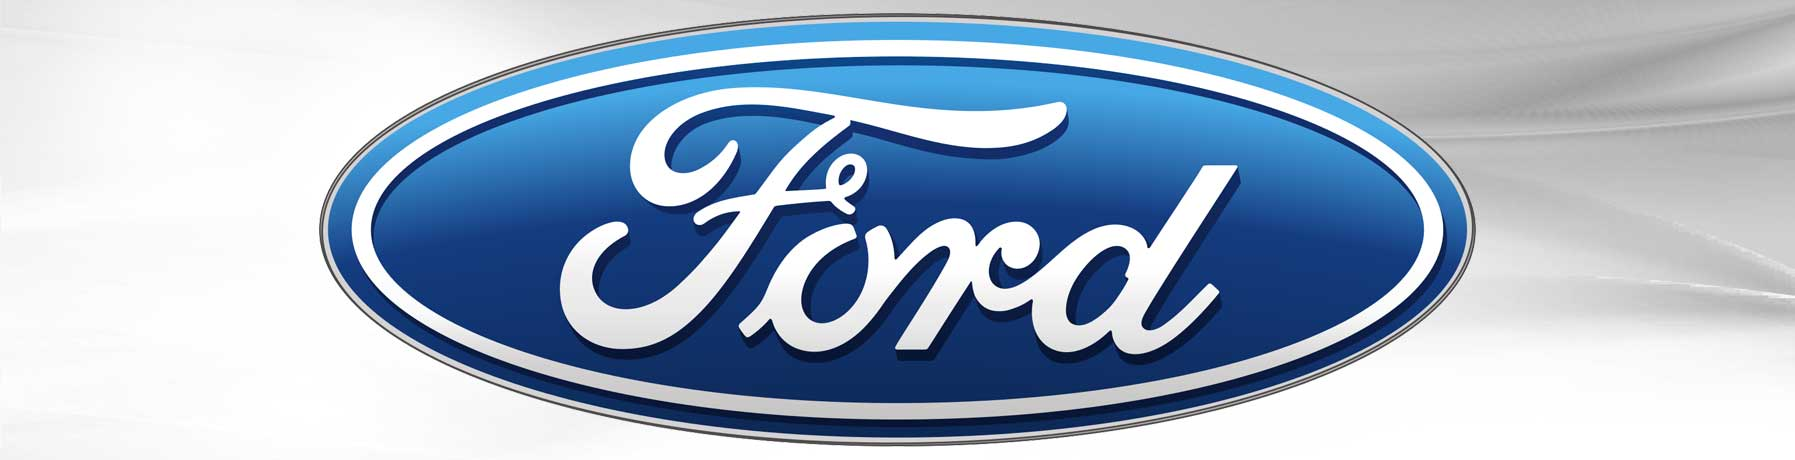 We service Ford vehicles